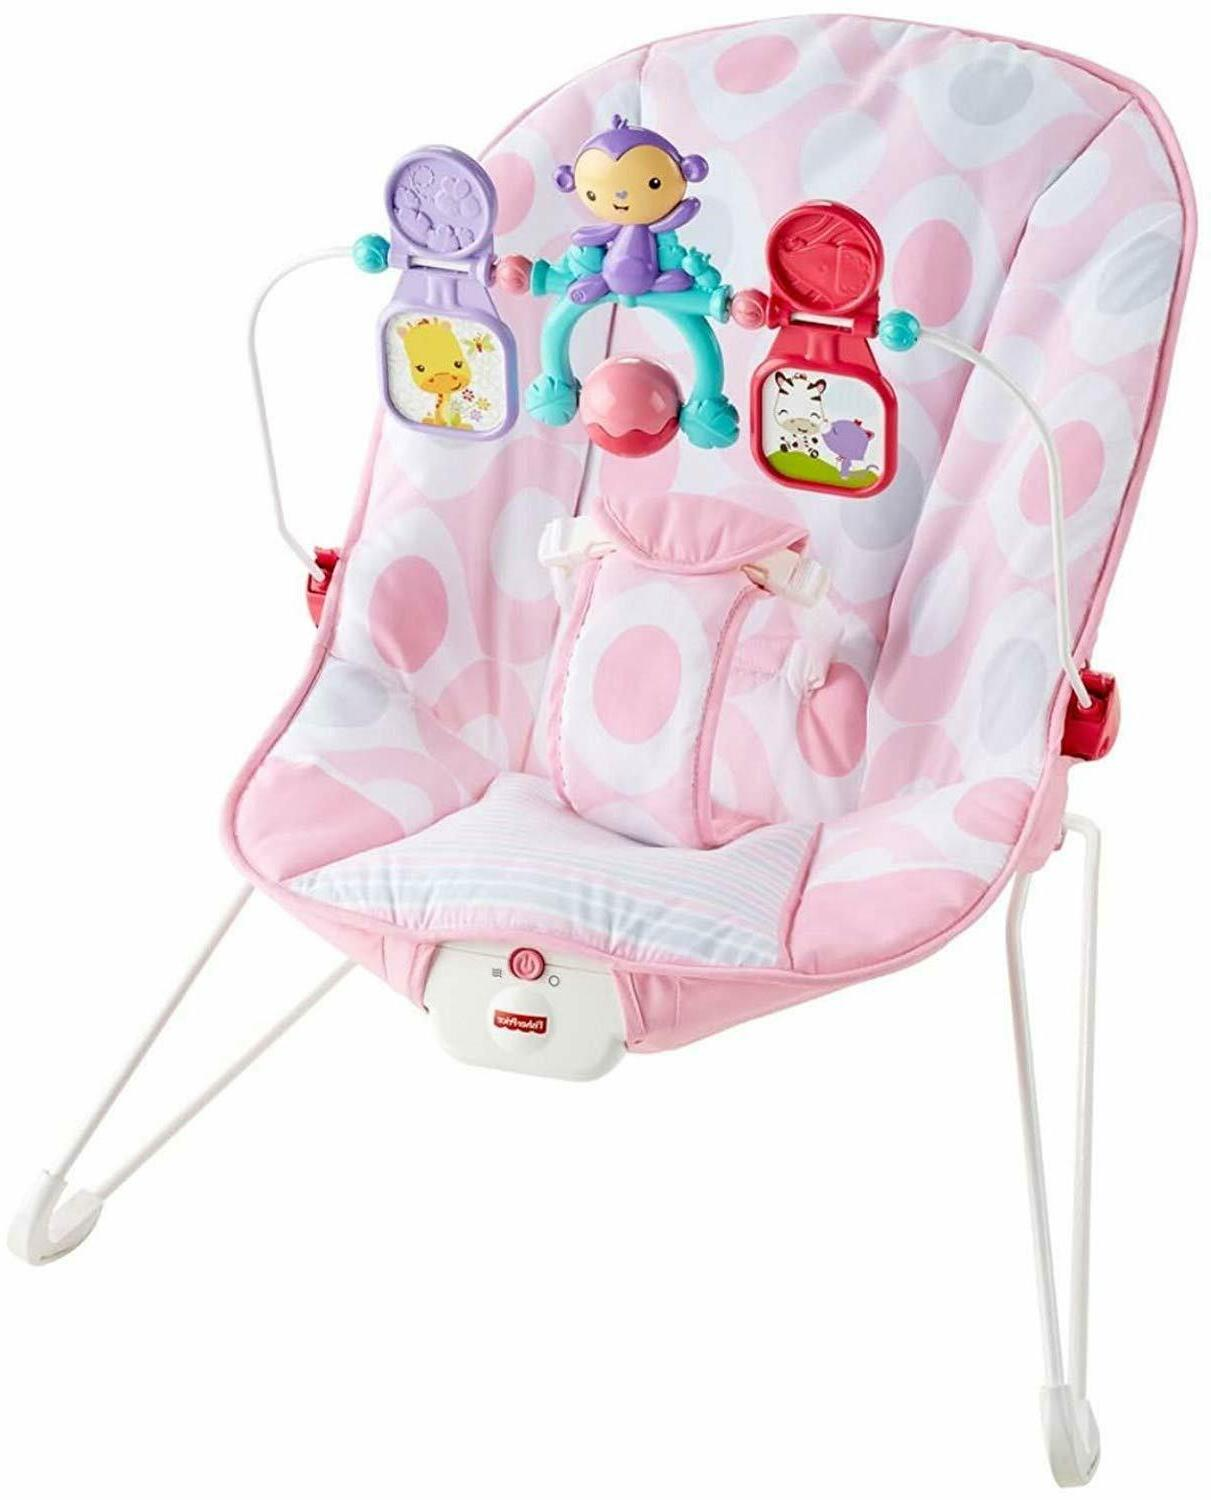 Baby Rocker Chair Pink Seat Infant Kids